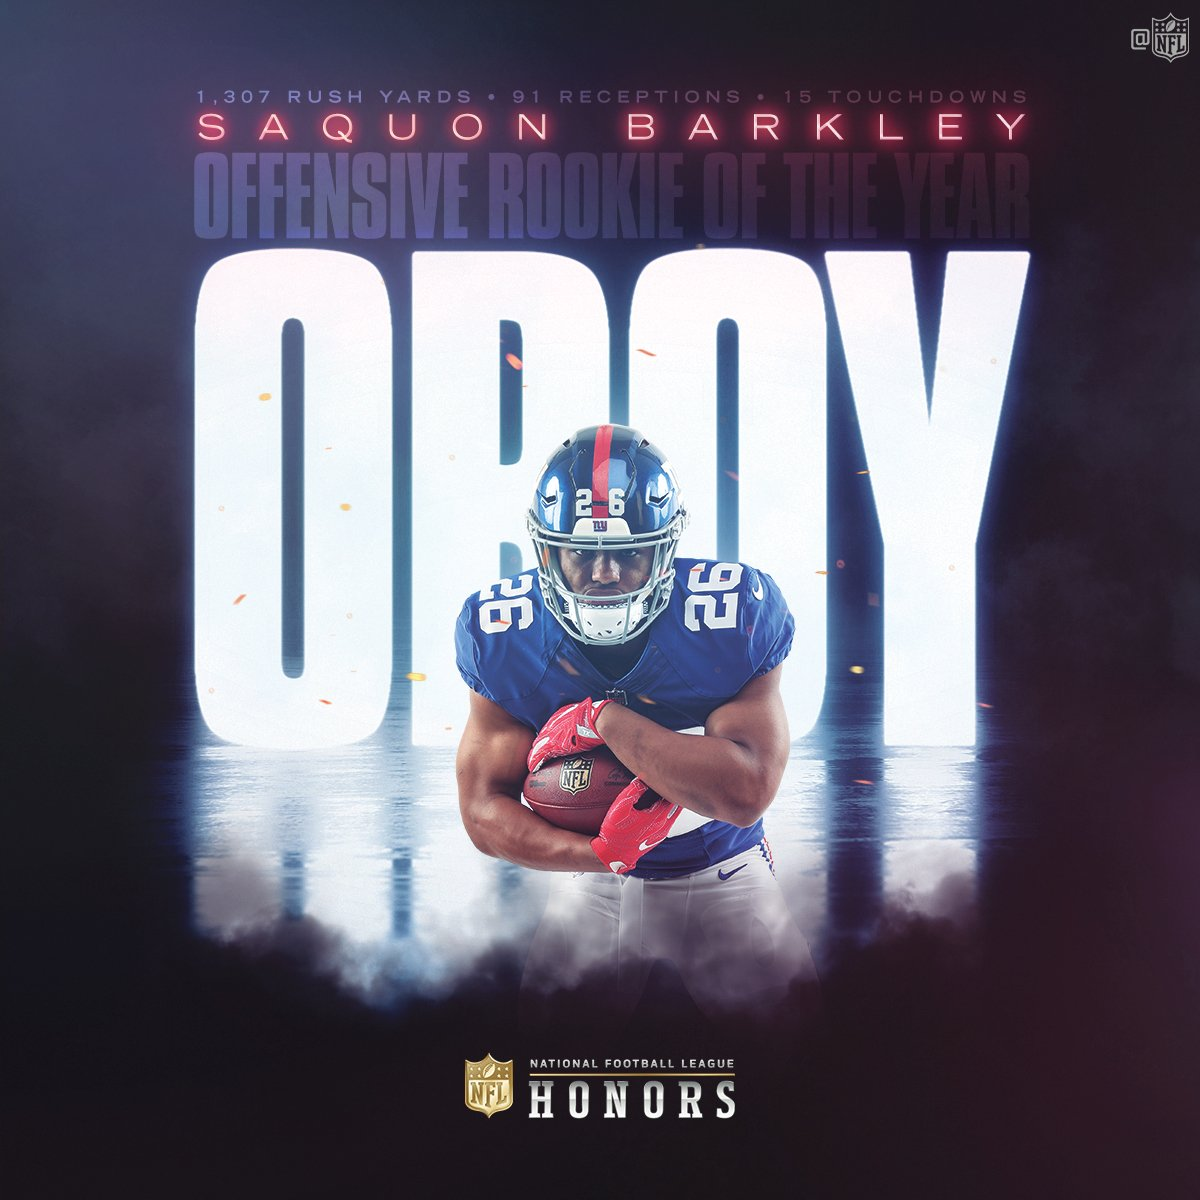 Saquon!   @Giants RB @saquon Barkley is the 2018 Offensive Rookie of the Year! #NFLHonors